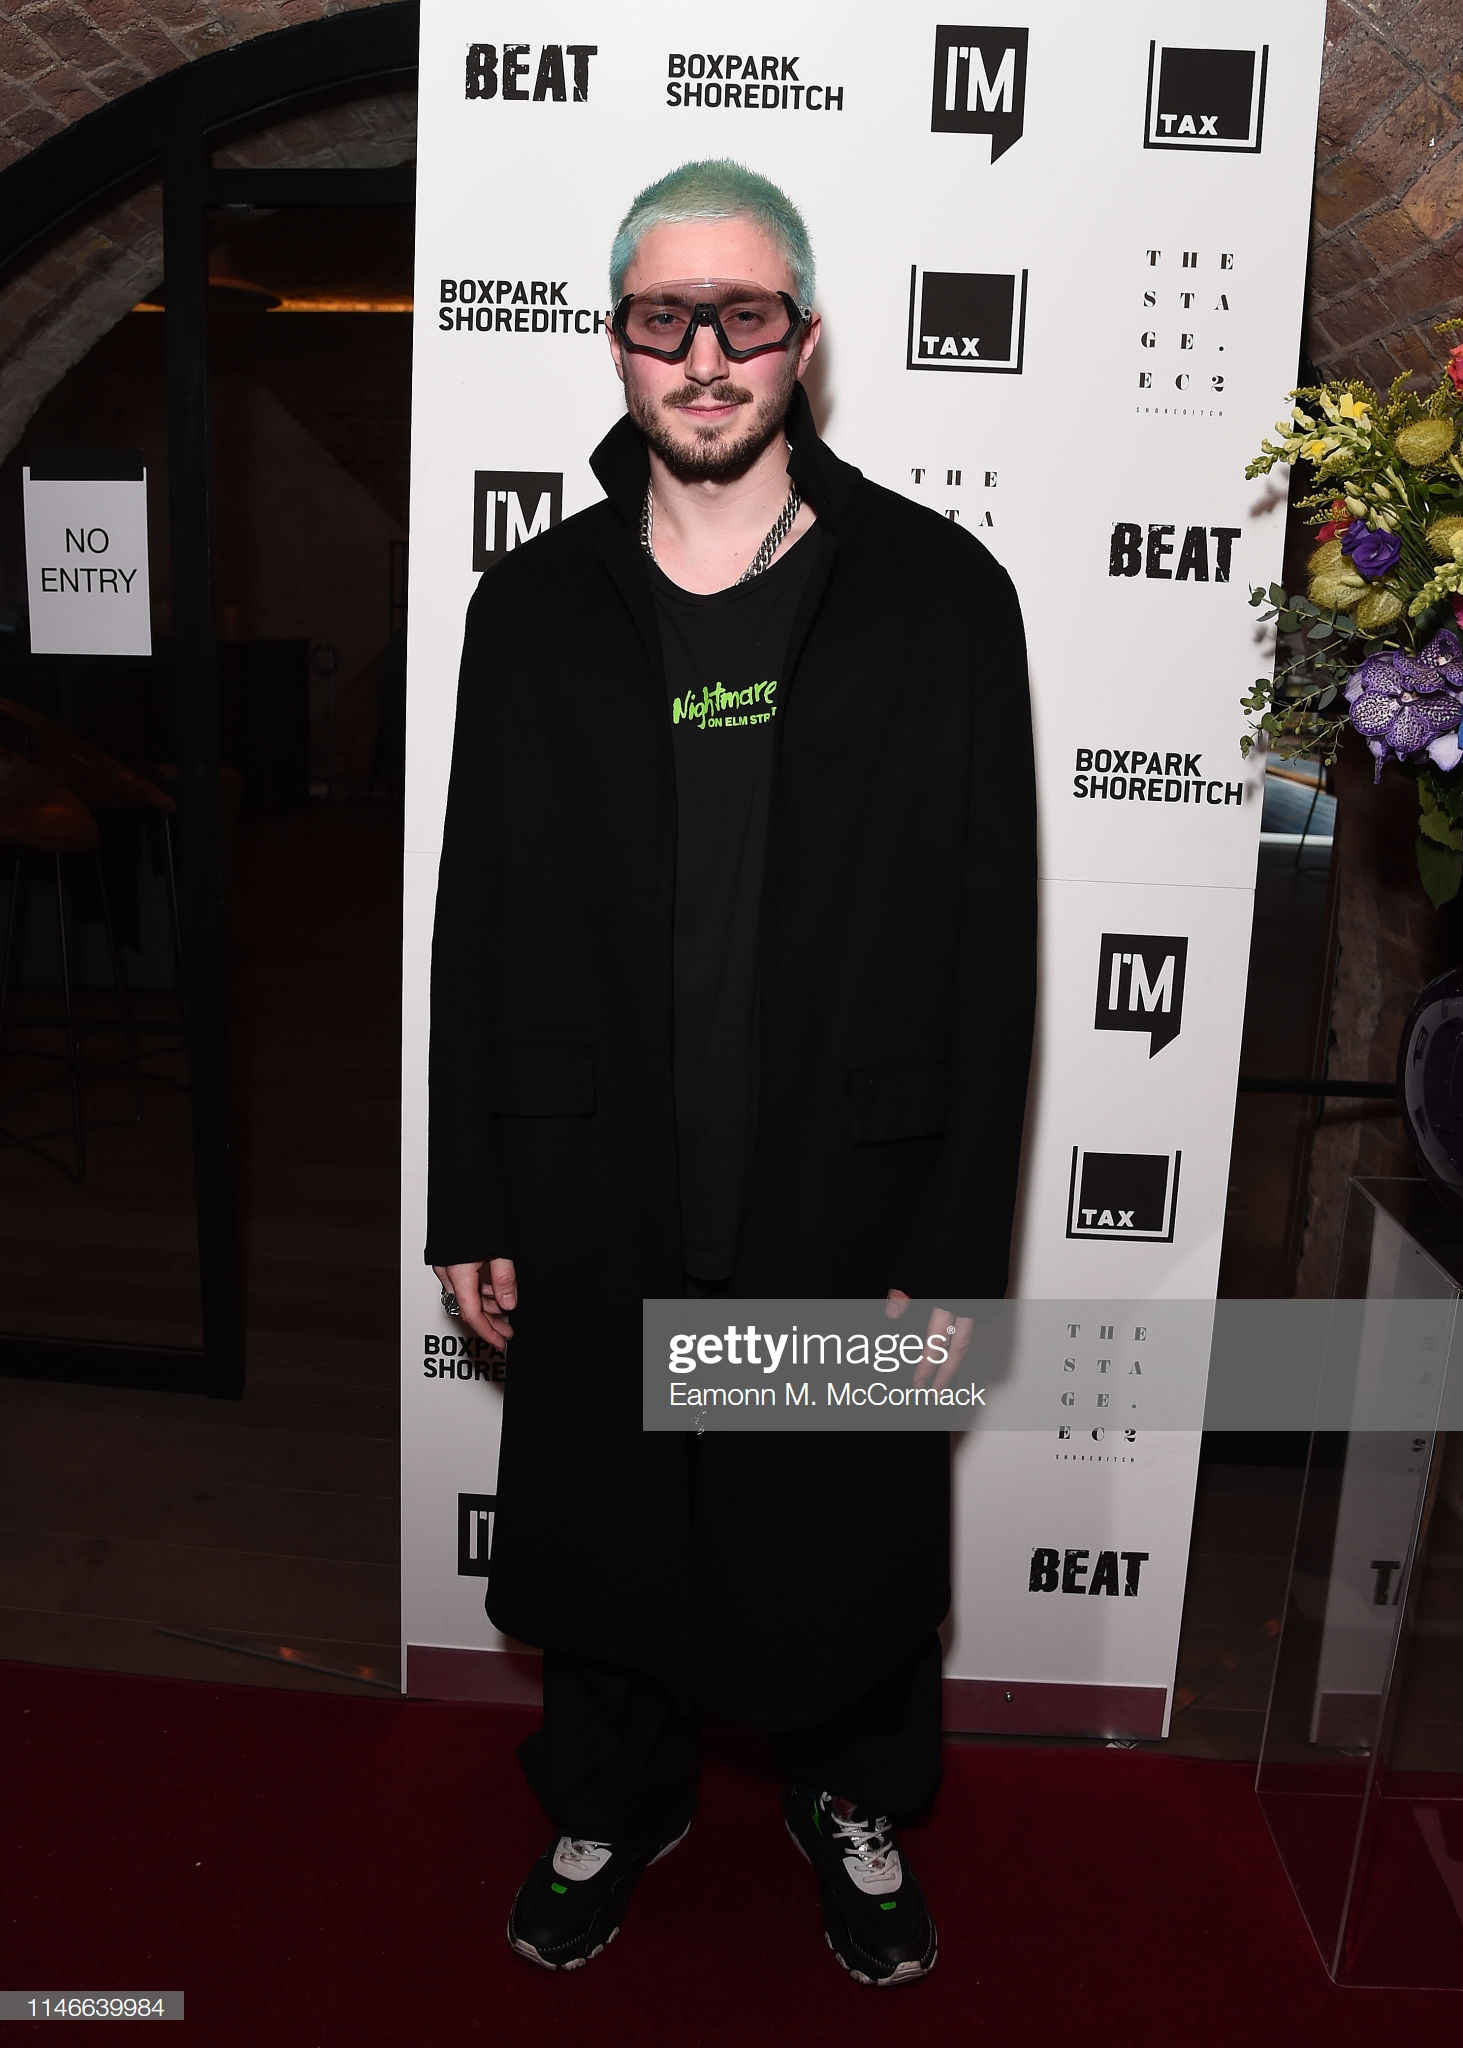 "LONDON, ENGLAND - MAY 02: Thomas Webb during ""Futurama"" exhibtion by the TAX Collection at Imitate Modern on May 02, 2019 in London, England. (Photo by Eamonn M. McCormack/Getty Images) LONDON, ENGLAND - MAY 02: Thomas Webb during ""Futurama"" exhibtion by the TAX Collection at Imitate Modern on May 02, 2019 in London, England. (Photo by Eamonn M. McCormack/Getty Images)"